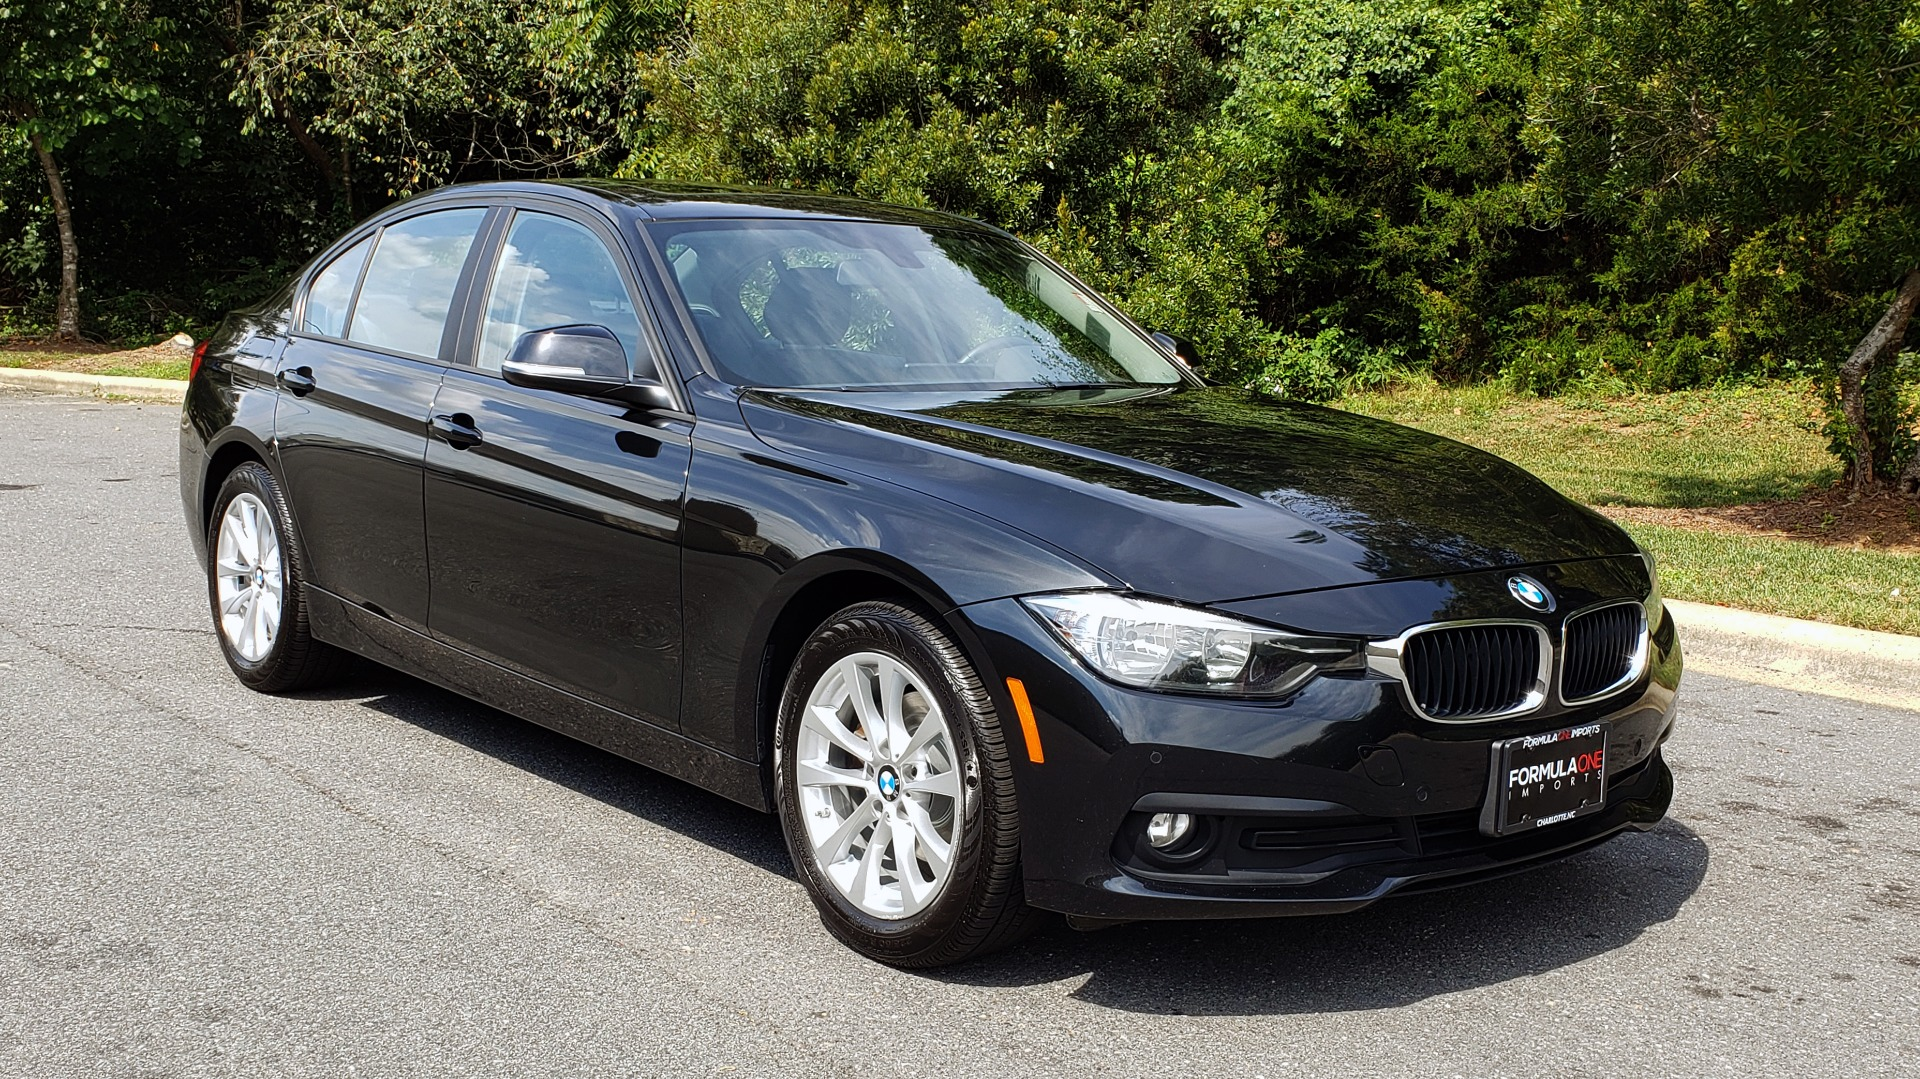 Used 2017 BMW 3 SERIES 320I XDRIVE / DRVR ASST / NAV / SUNROOF / HTD STS / REARVIEW for sale $21,995 at Formula Imports in Charlotte NC 28227 4